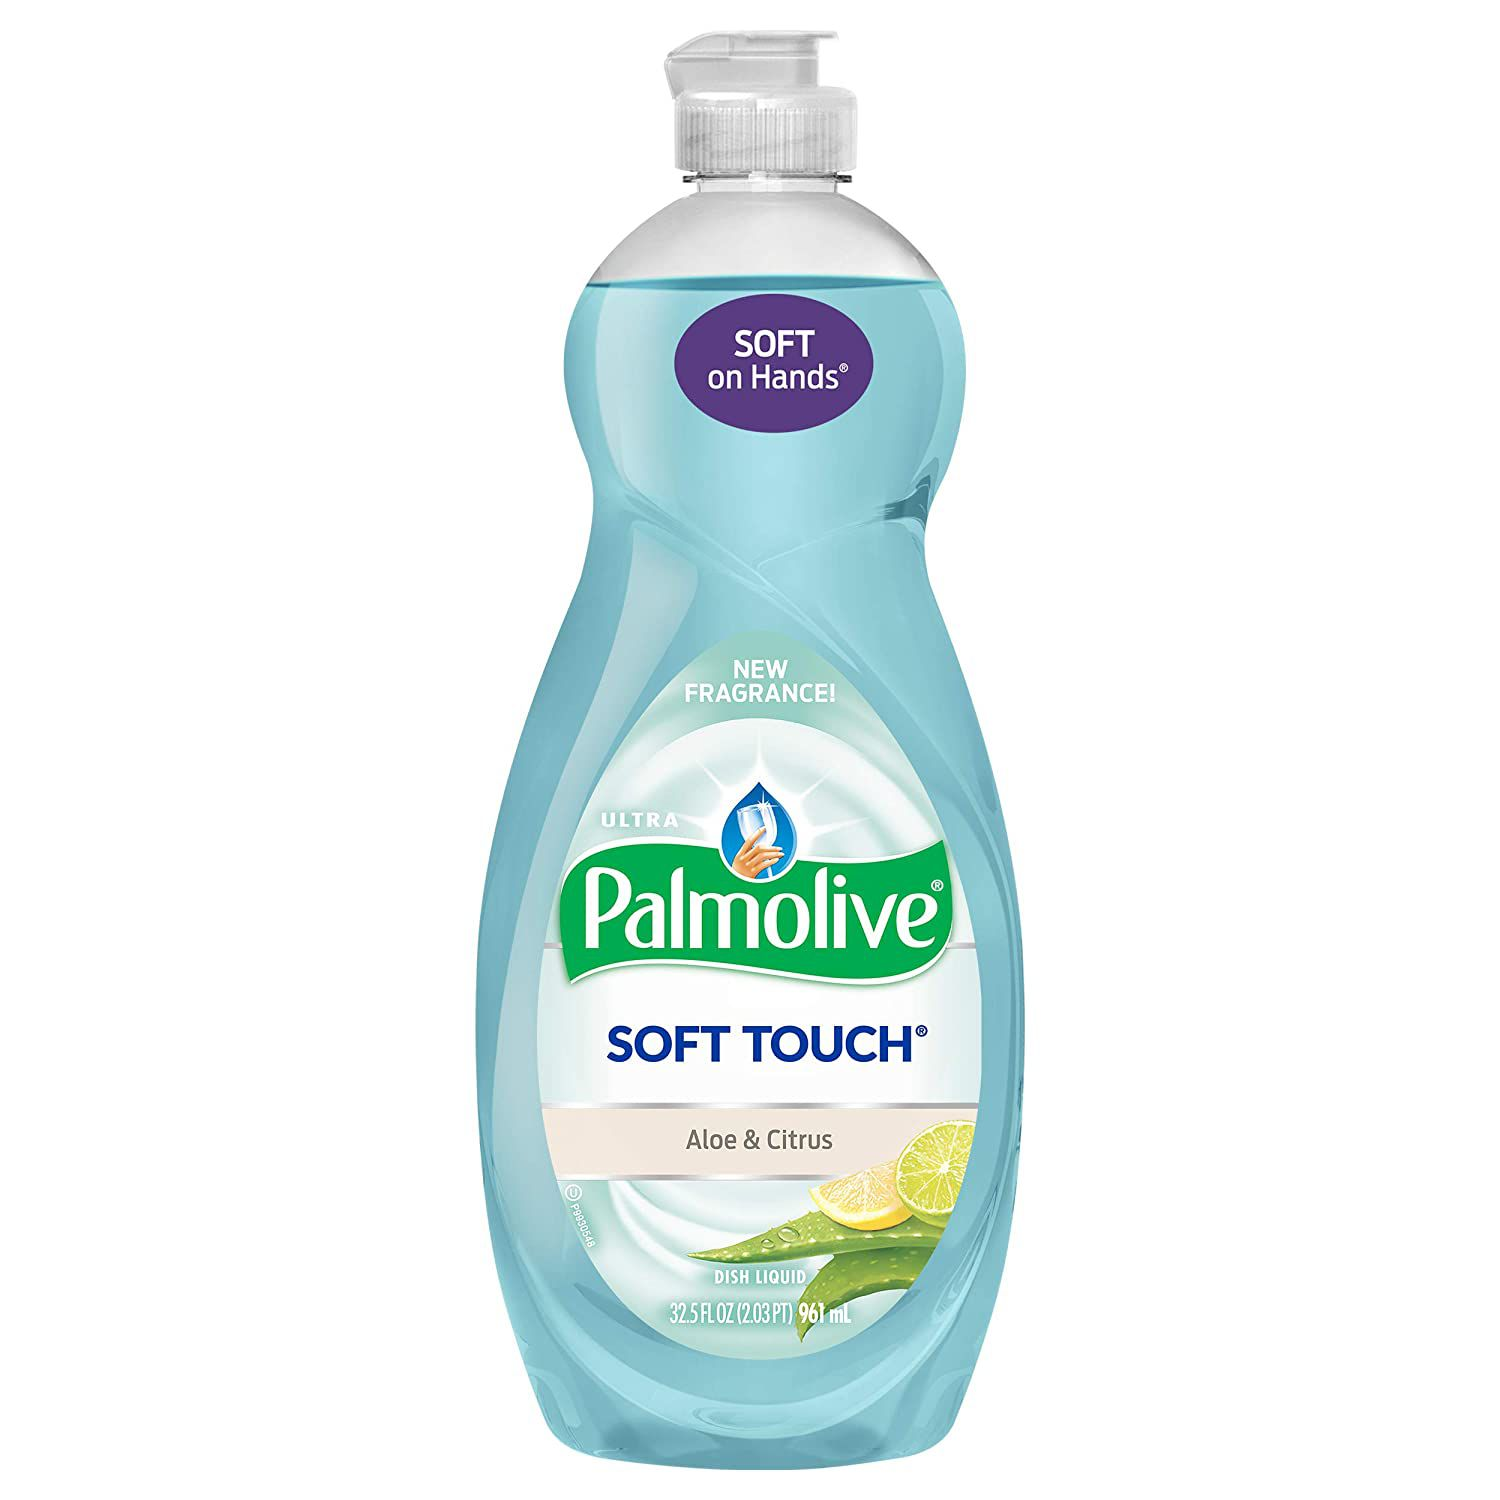 Palmolive Soft Touch Concentrated Dish Washing Liquid